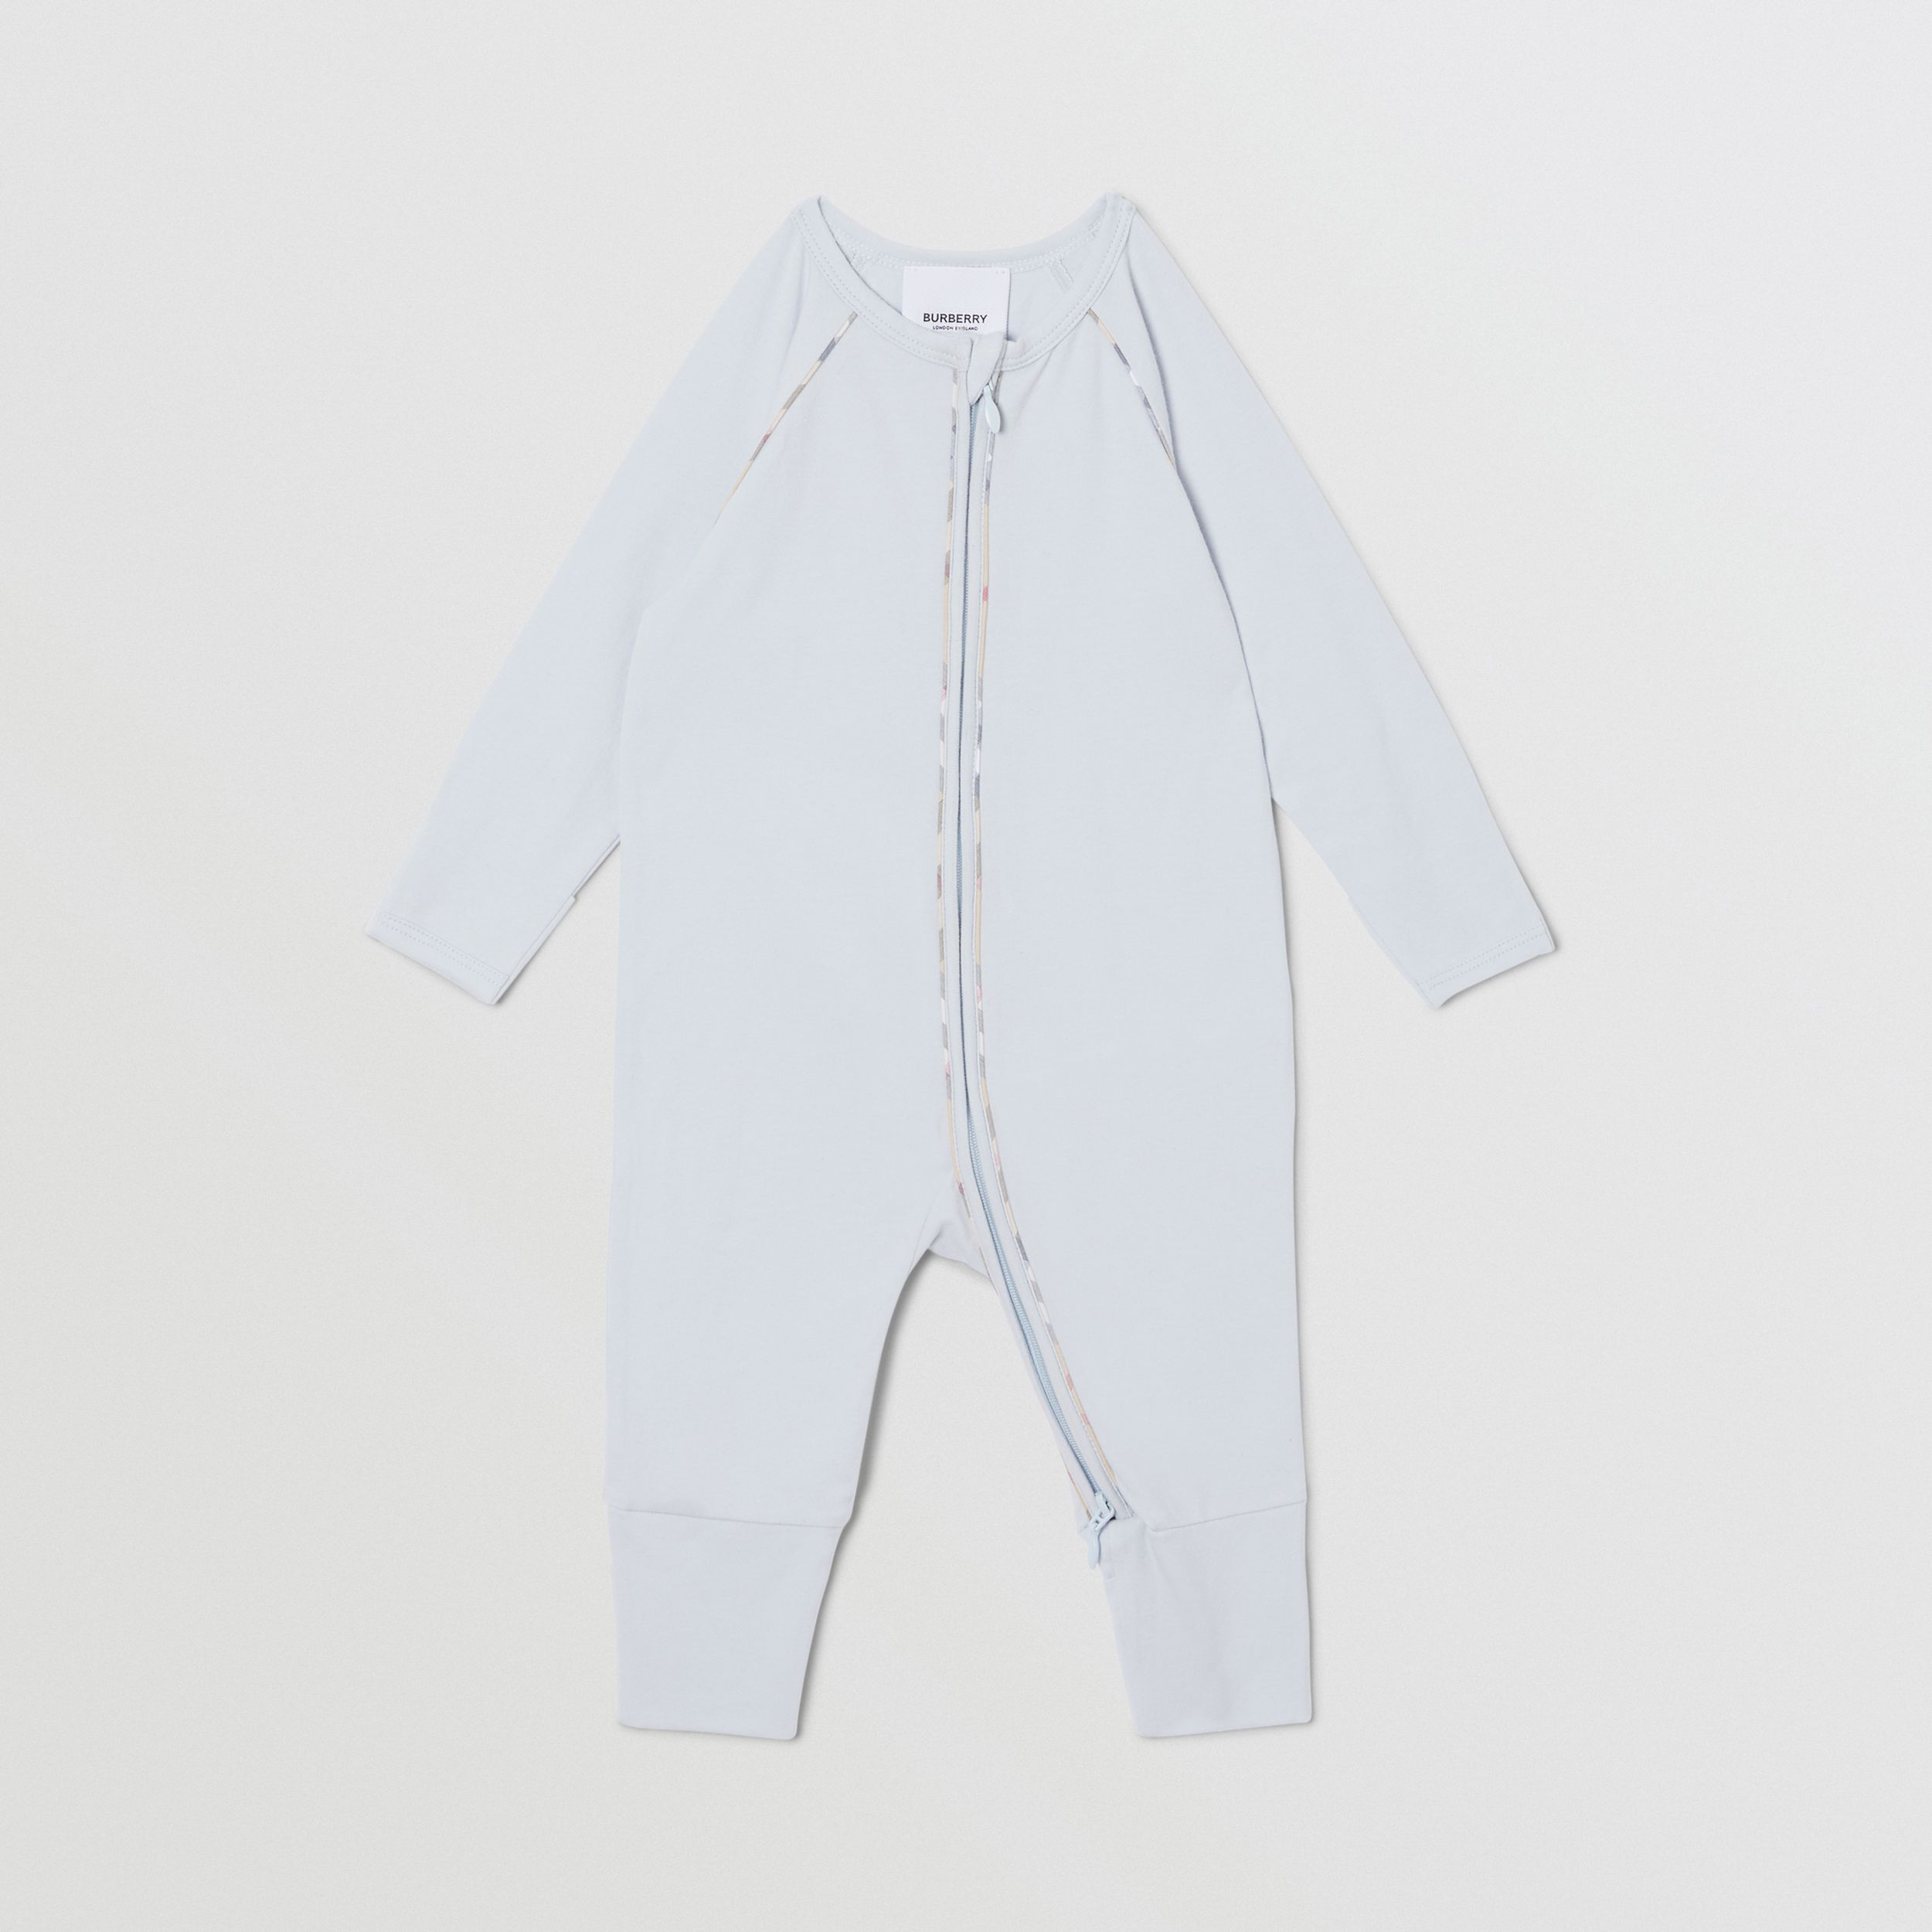 Check Trim Stretch Cotton Three-piece Baby Gift Set in Pale Blue - Children | Burberry - 4